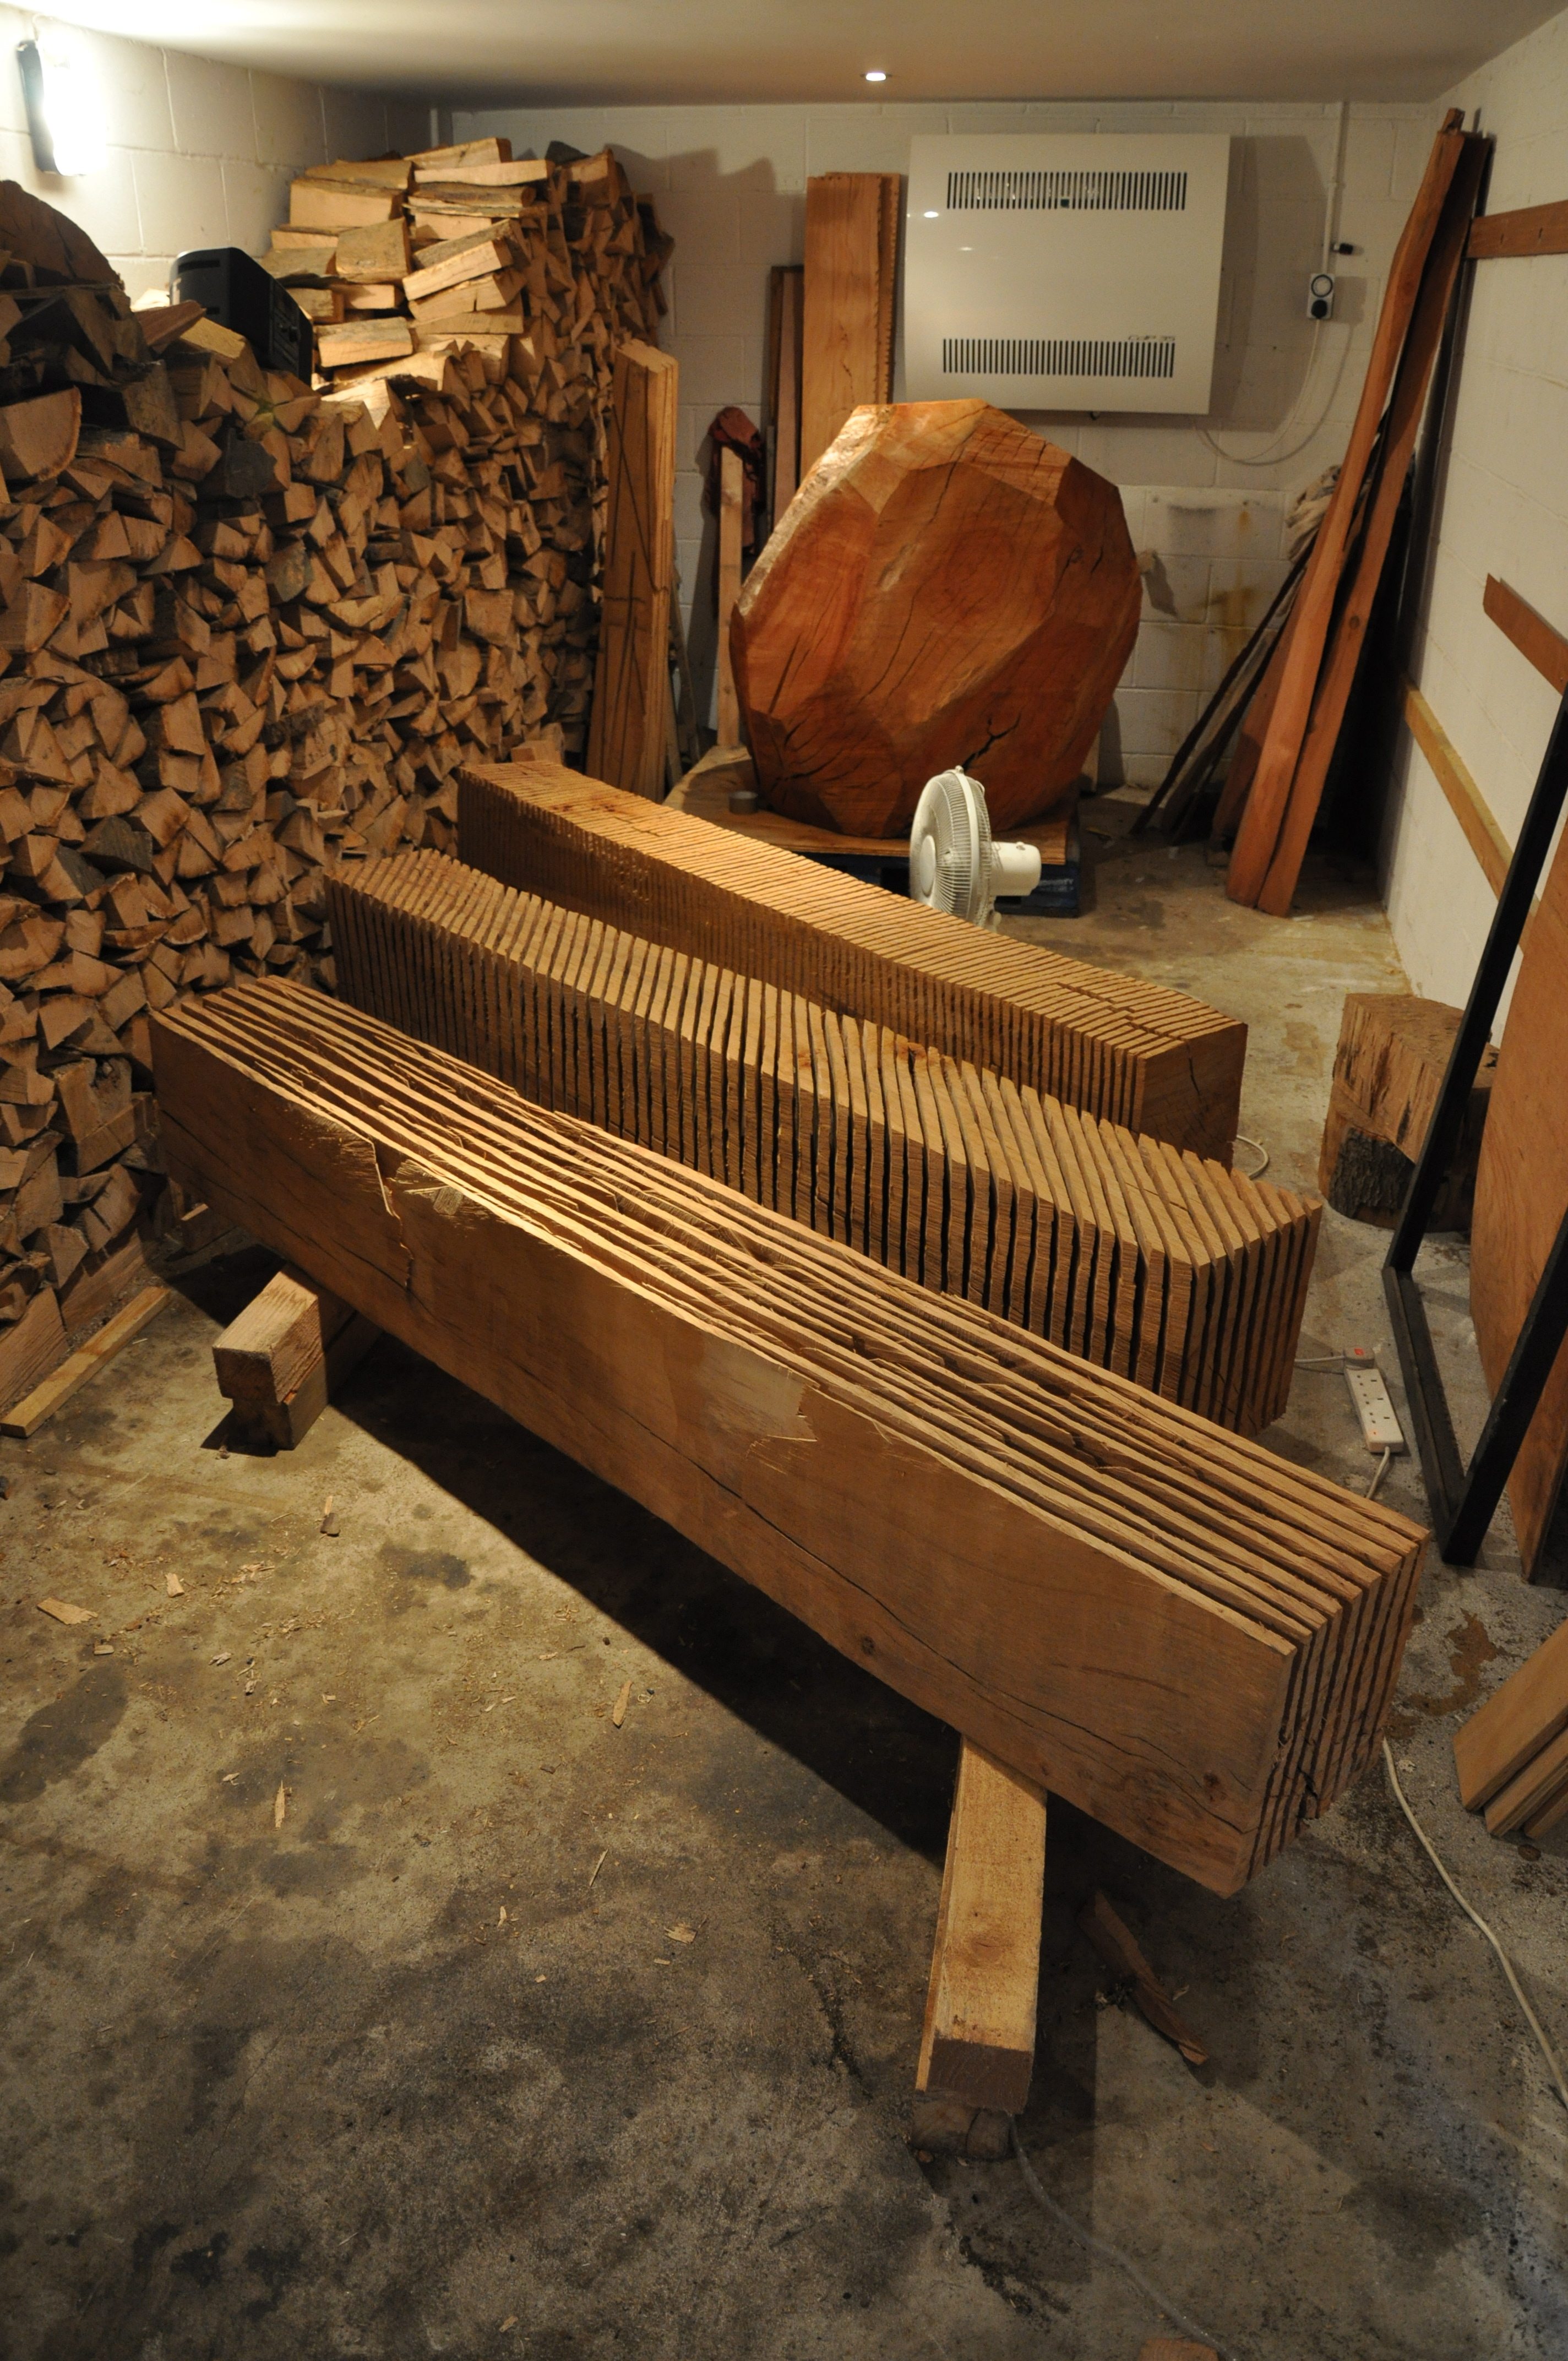 Recent works and winter firewood in the drying room